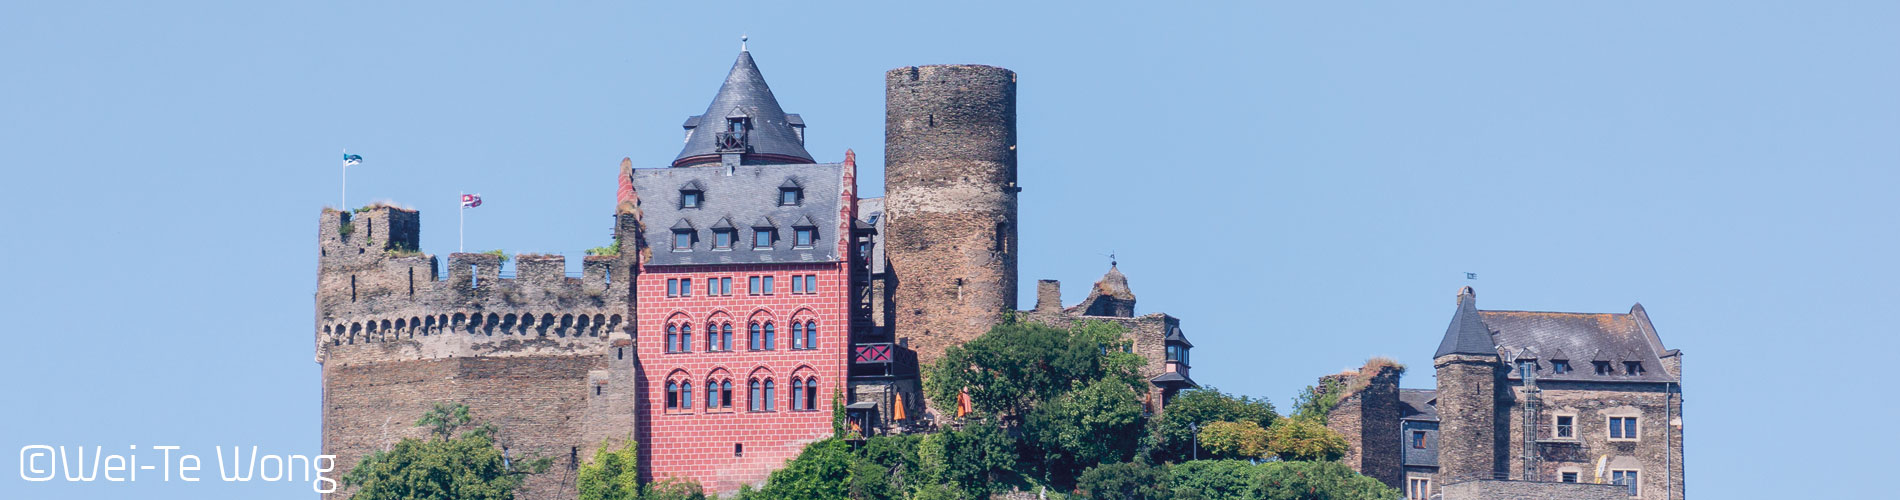 Blog_TopCastlesGermany_Schonburg-Castle_1900x500